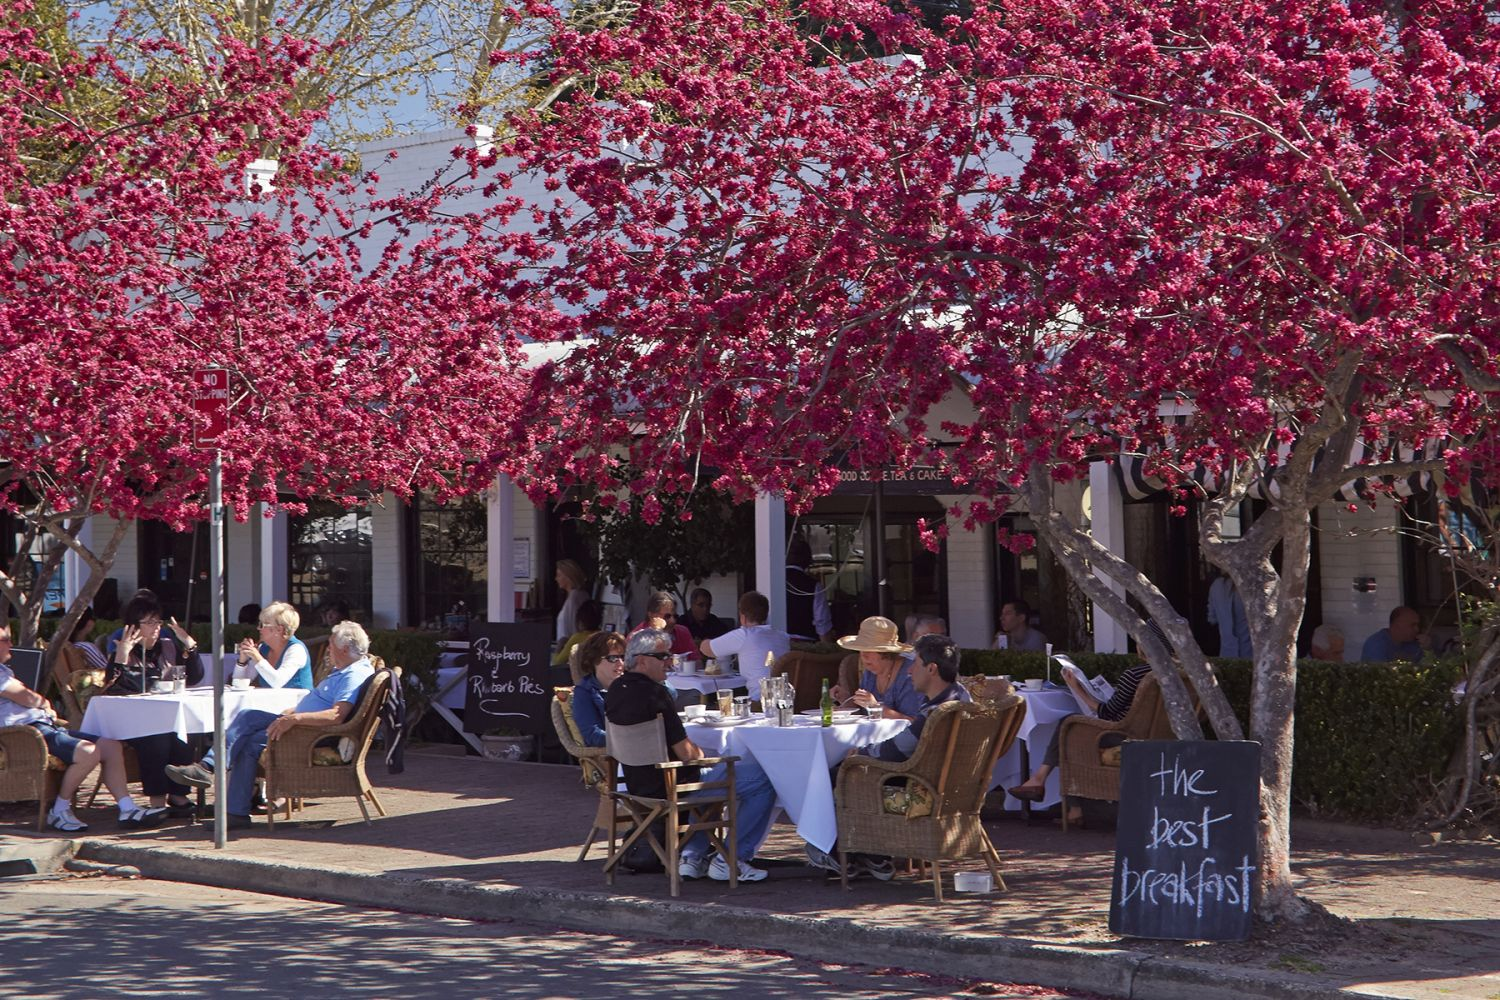 Al fresco dining in the village of Berrima, Southern Highlands